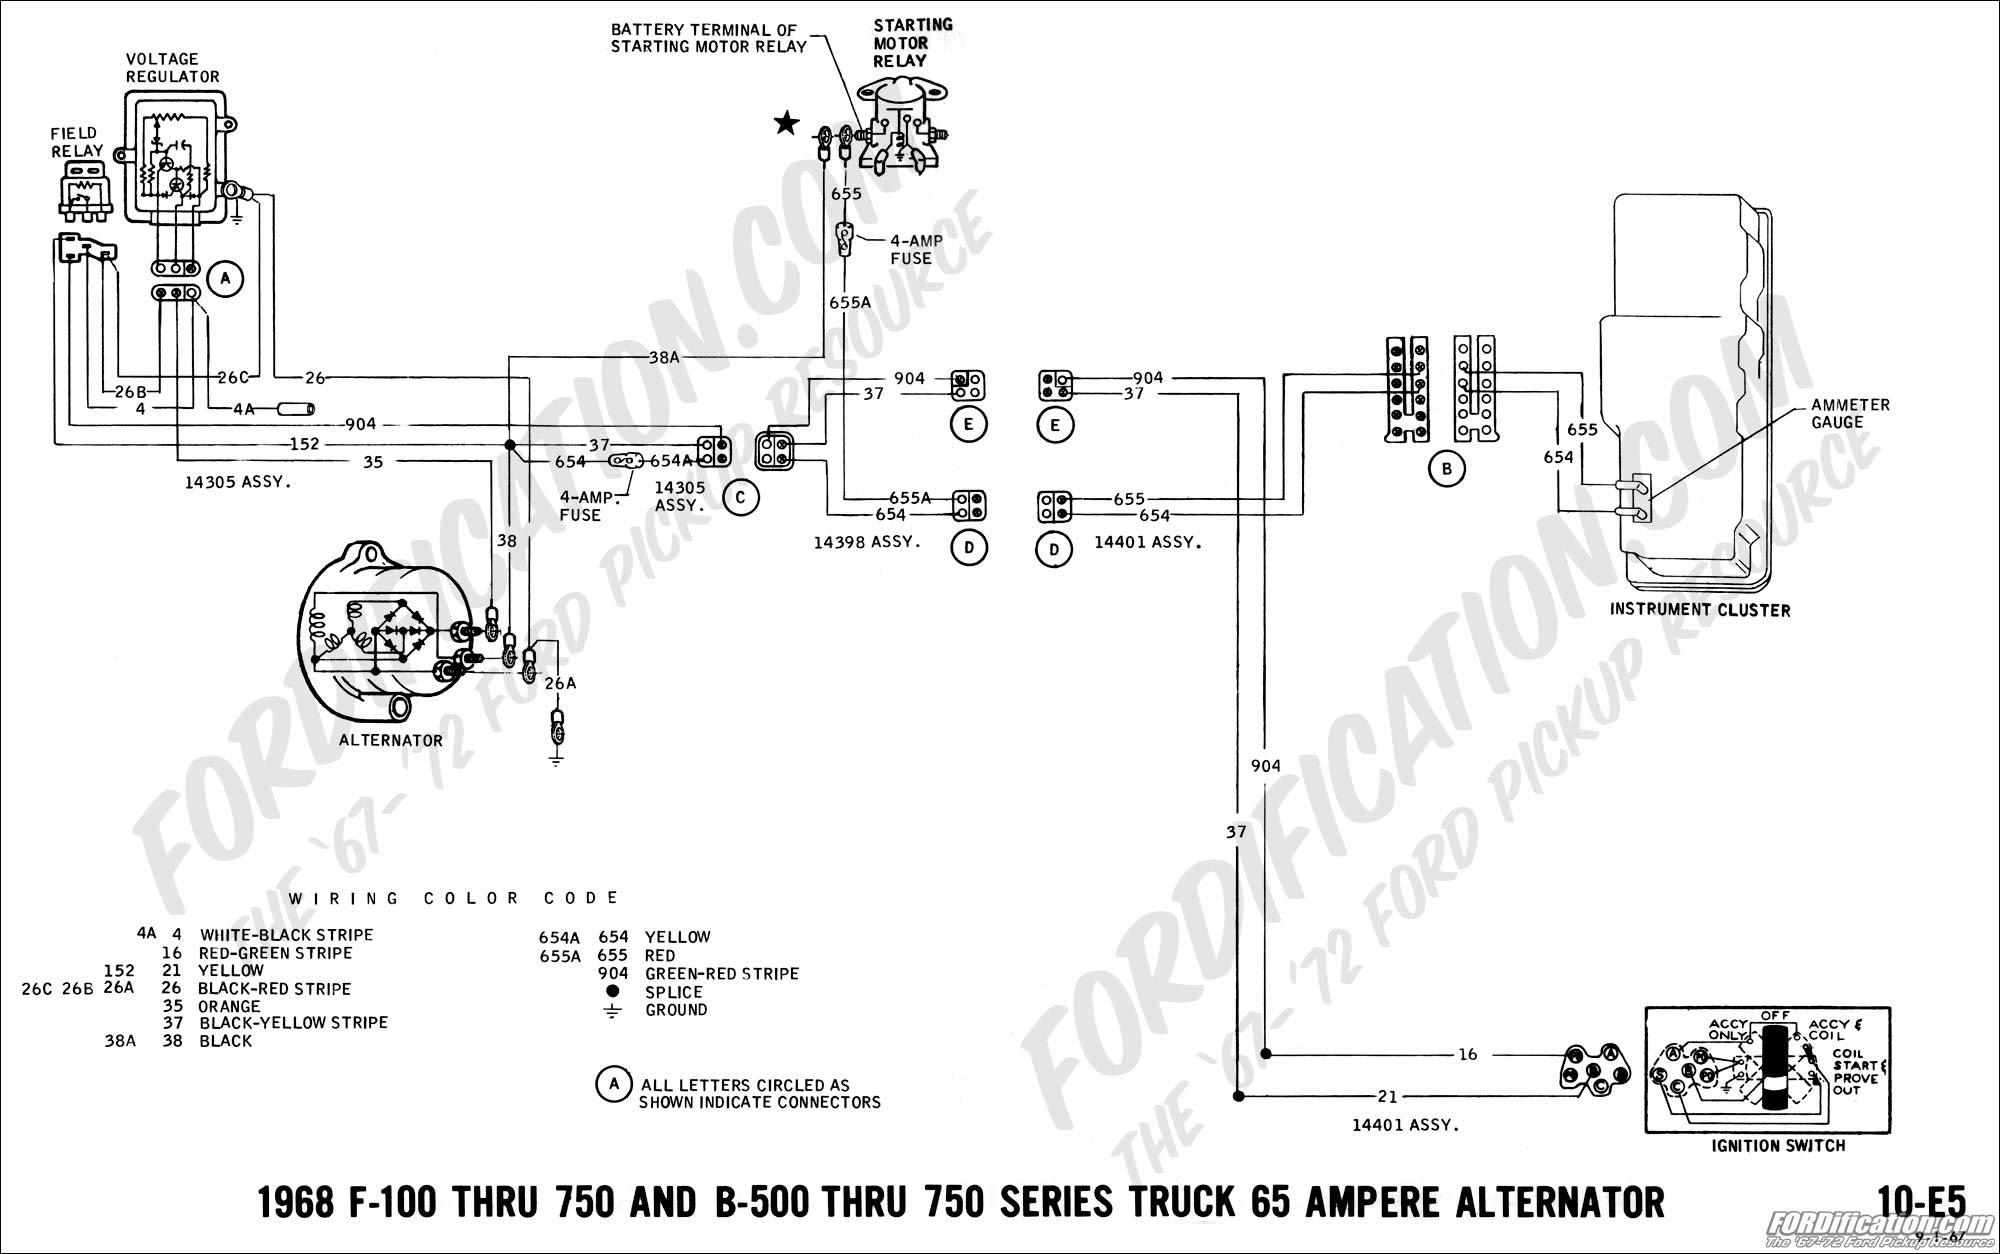 1976 Ford Truck Ignition Wiring Diagram Free Dodge Ram Wiring Harness Diagram Begeboy Wiring Diagram Source